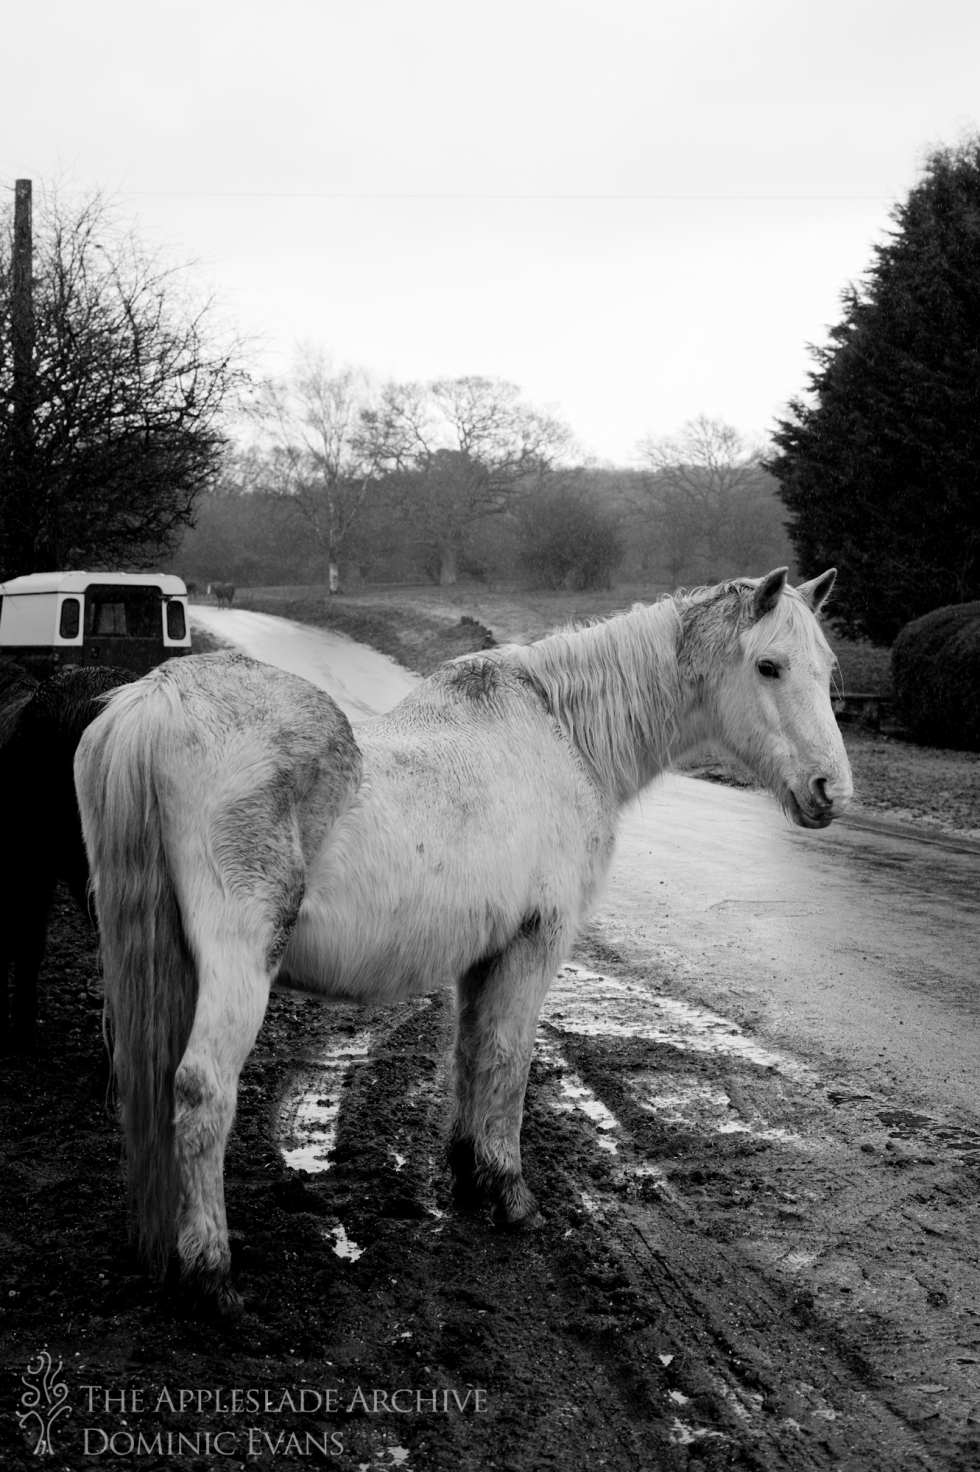 A New Forest Pony, Linwood, New Forest, Hampshire, 18th March 2013